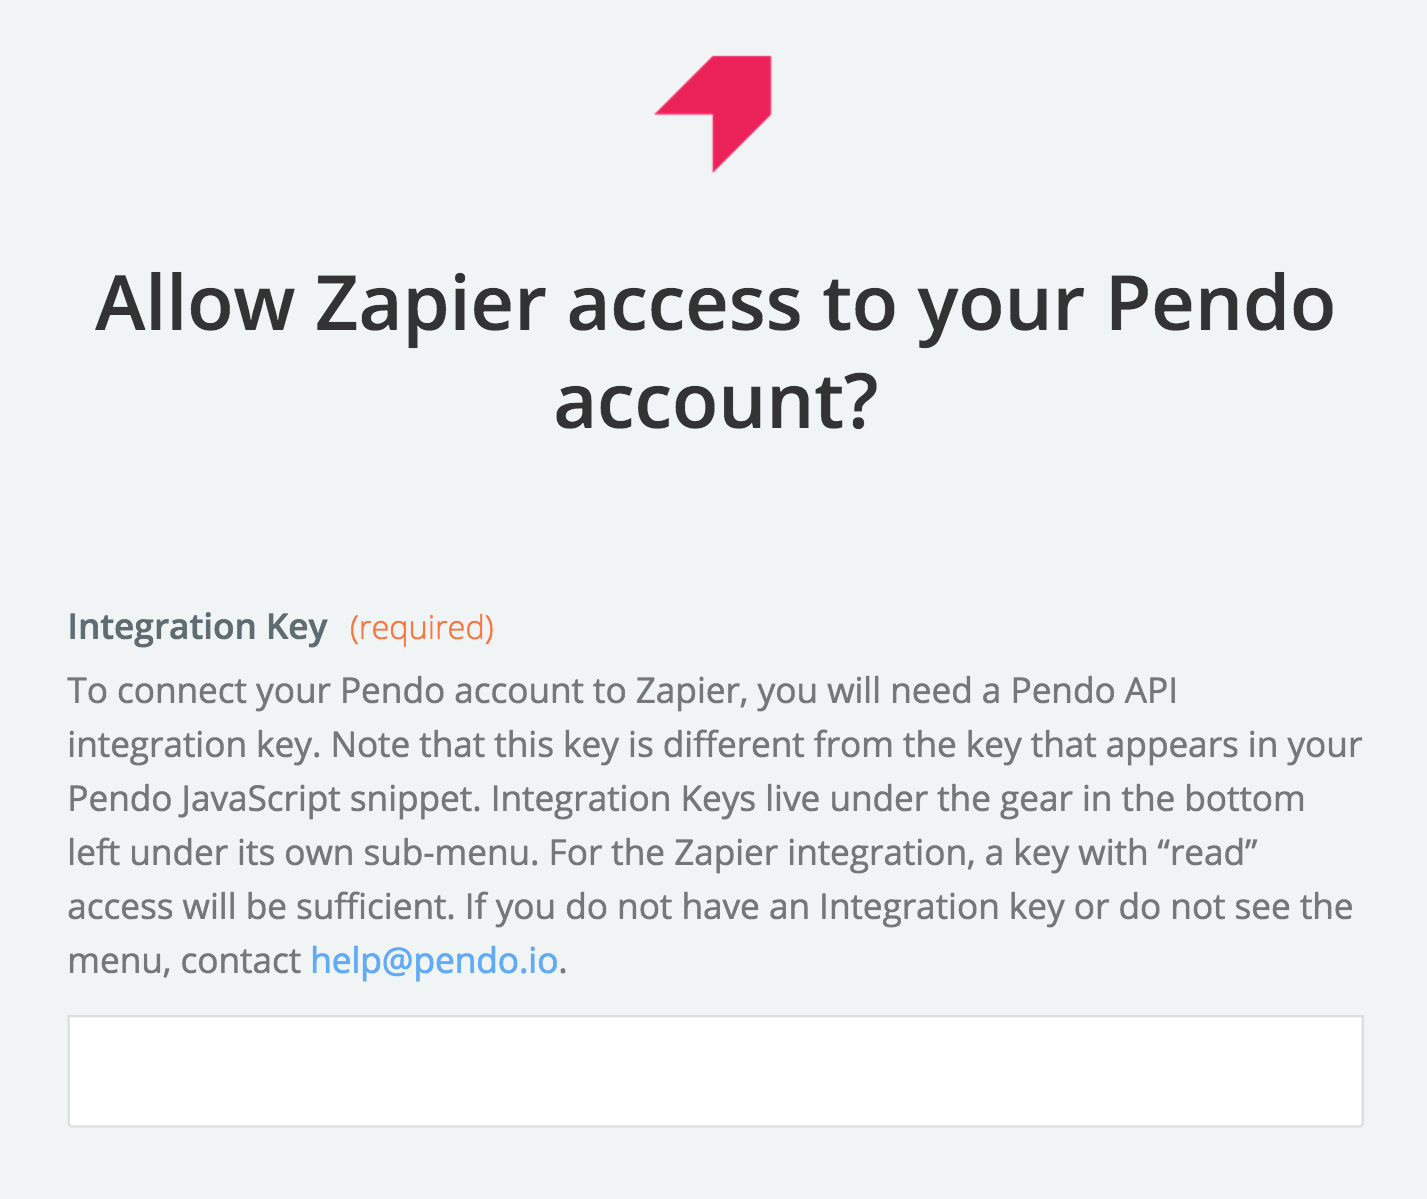 zap-integrationkey.png